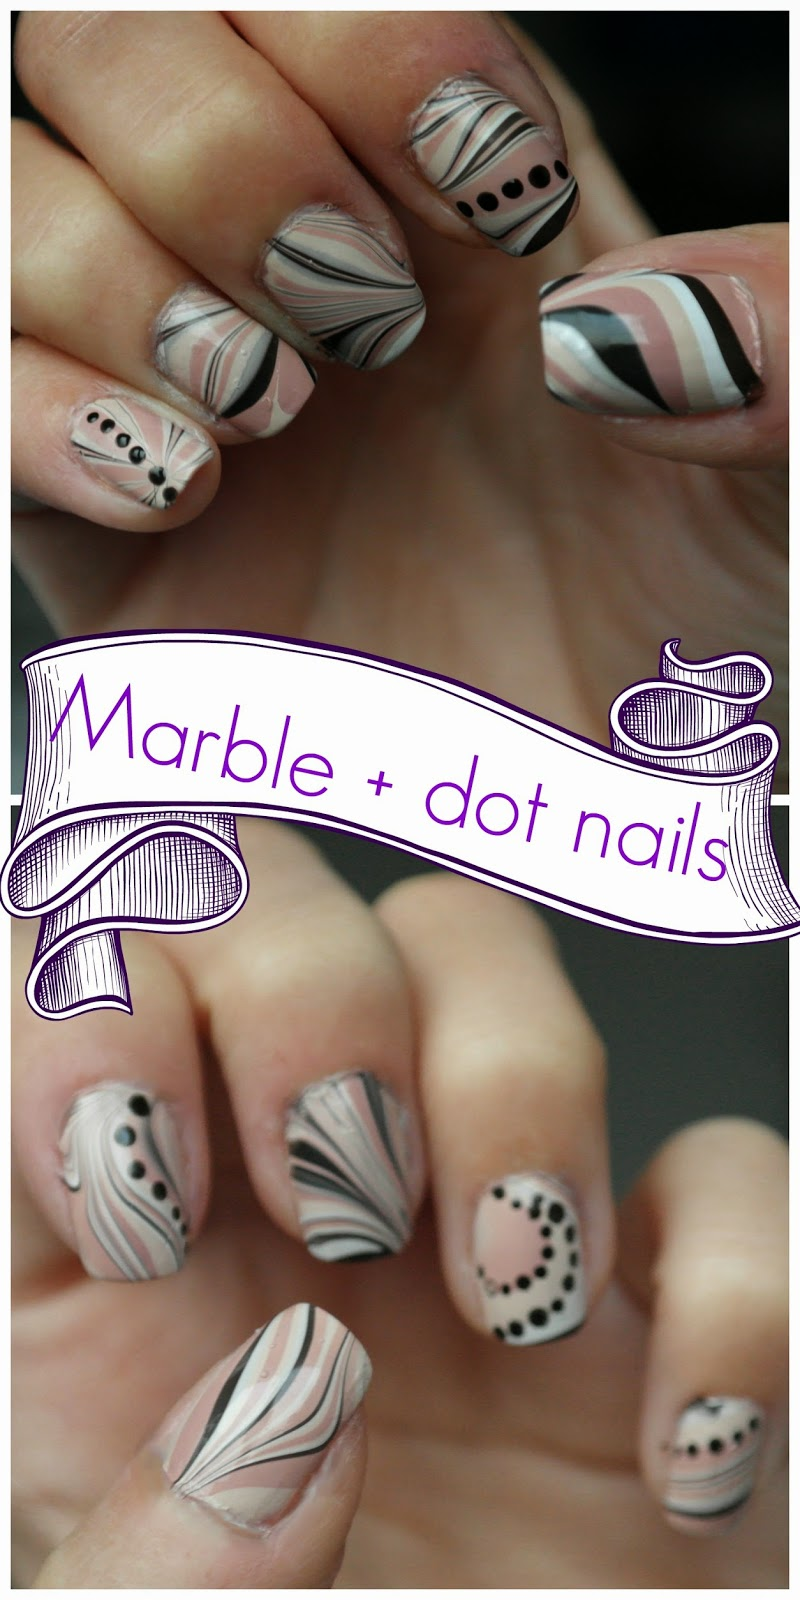 Water marble plus polka dot nails